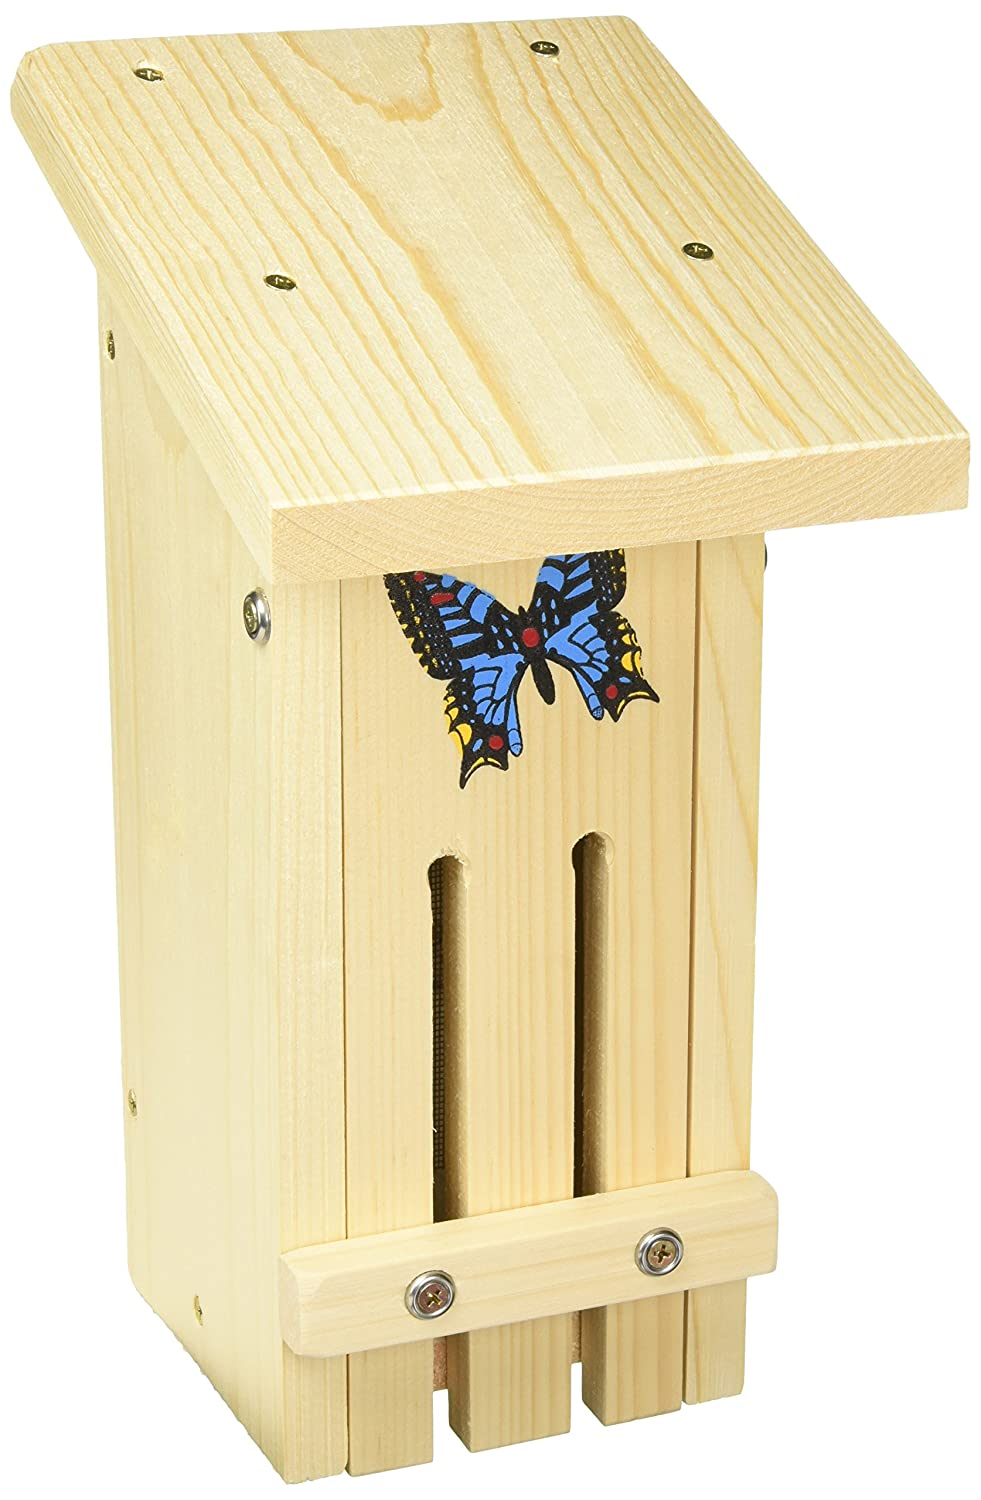 Stovall 14H Wood Small Butterfly Habitat